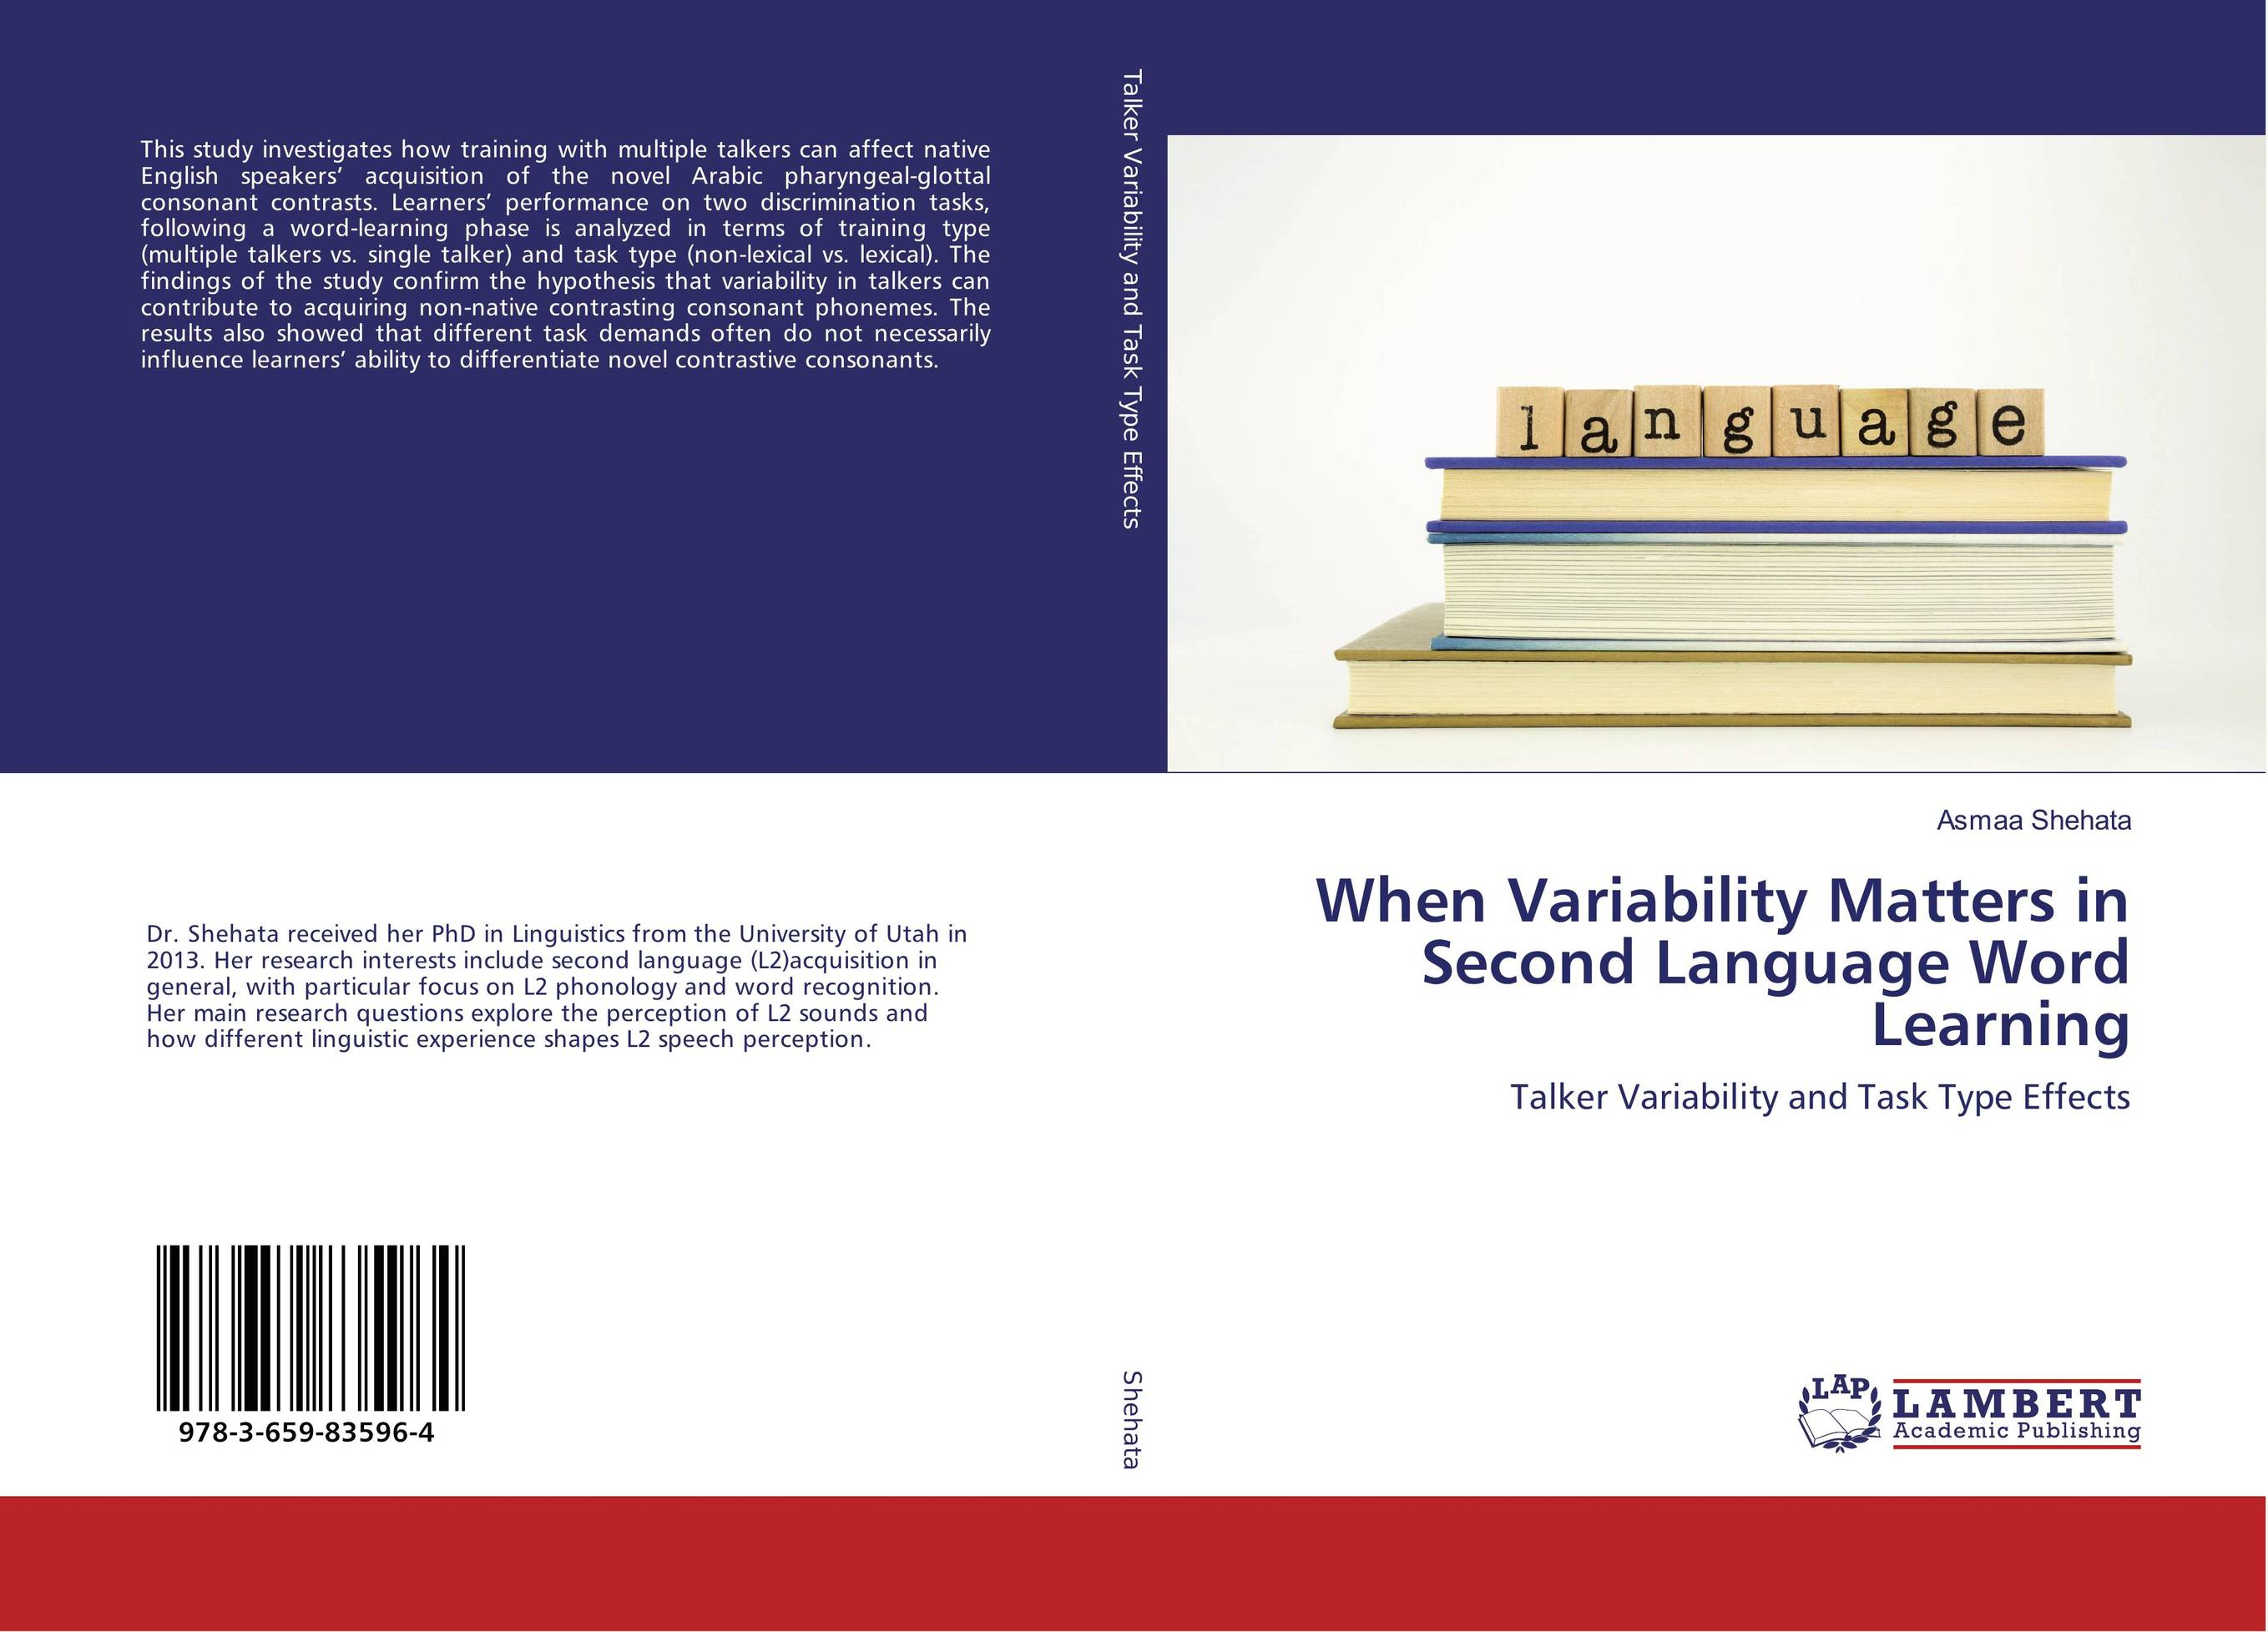 When Variability Matters in Second Language Word Learning zoltan dornyei the psychology of second language acquisition